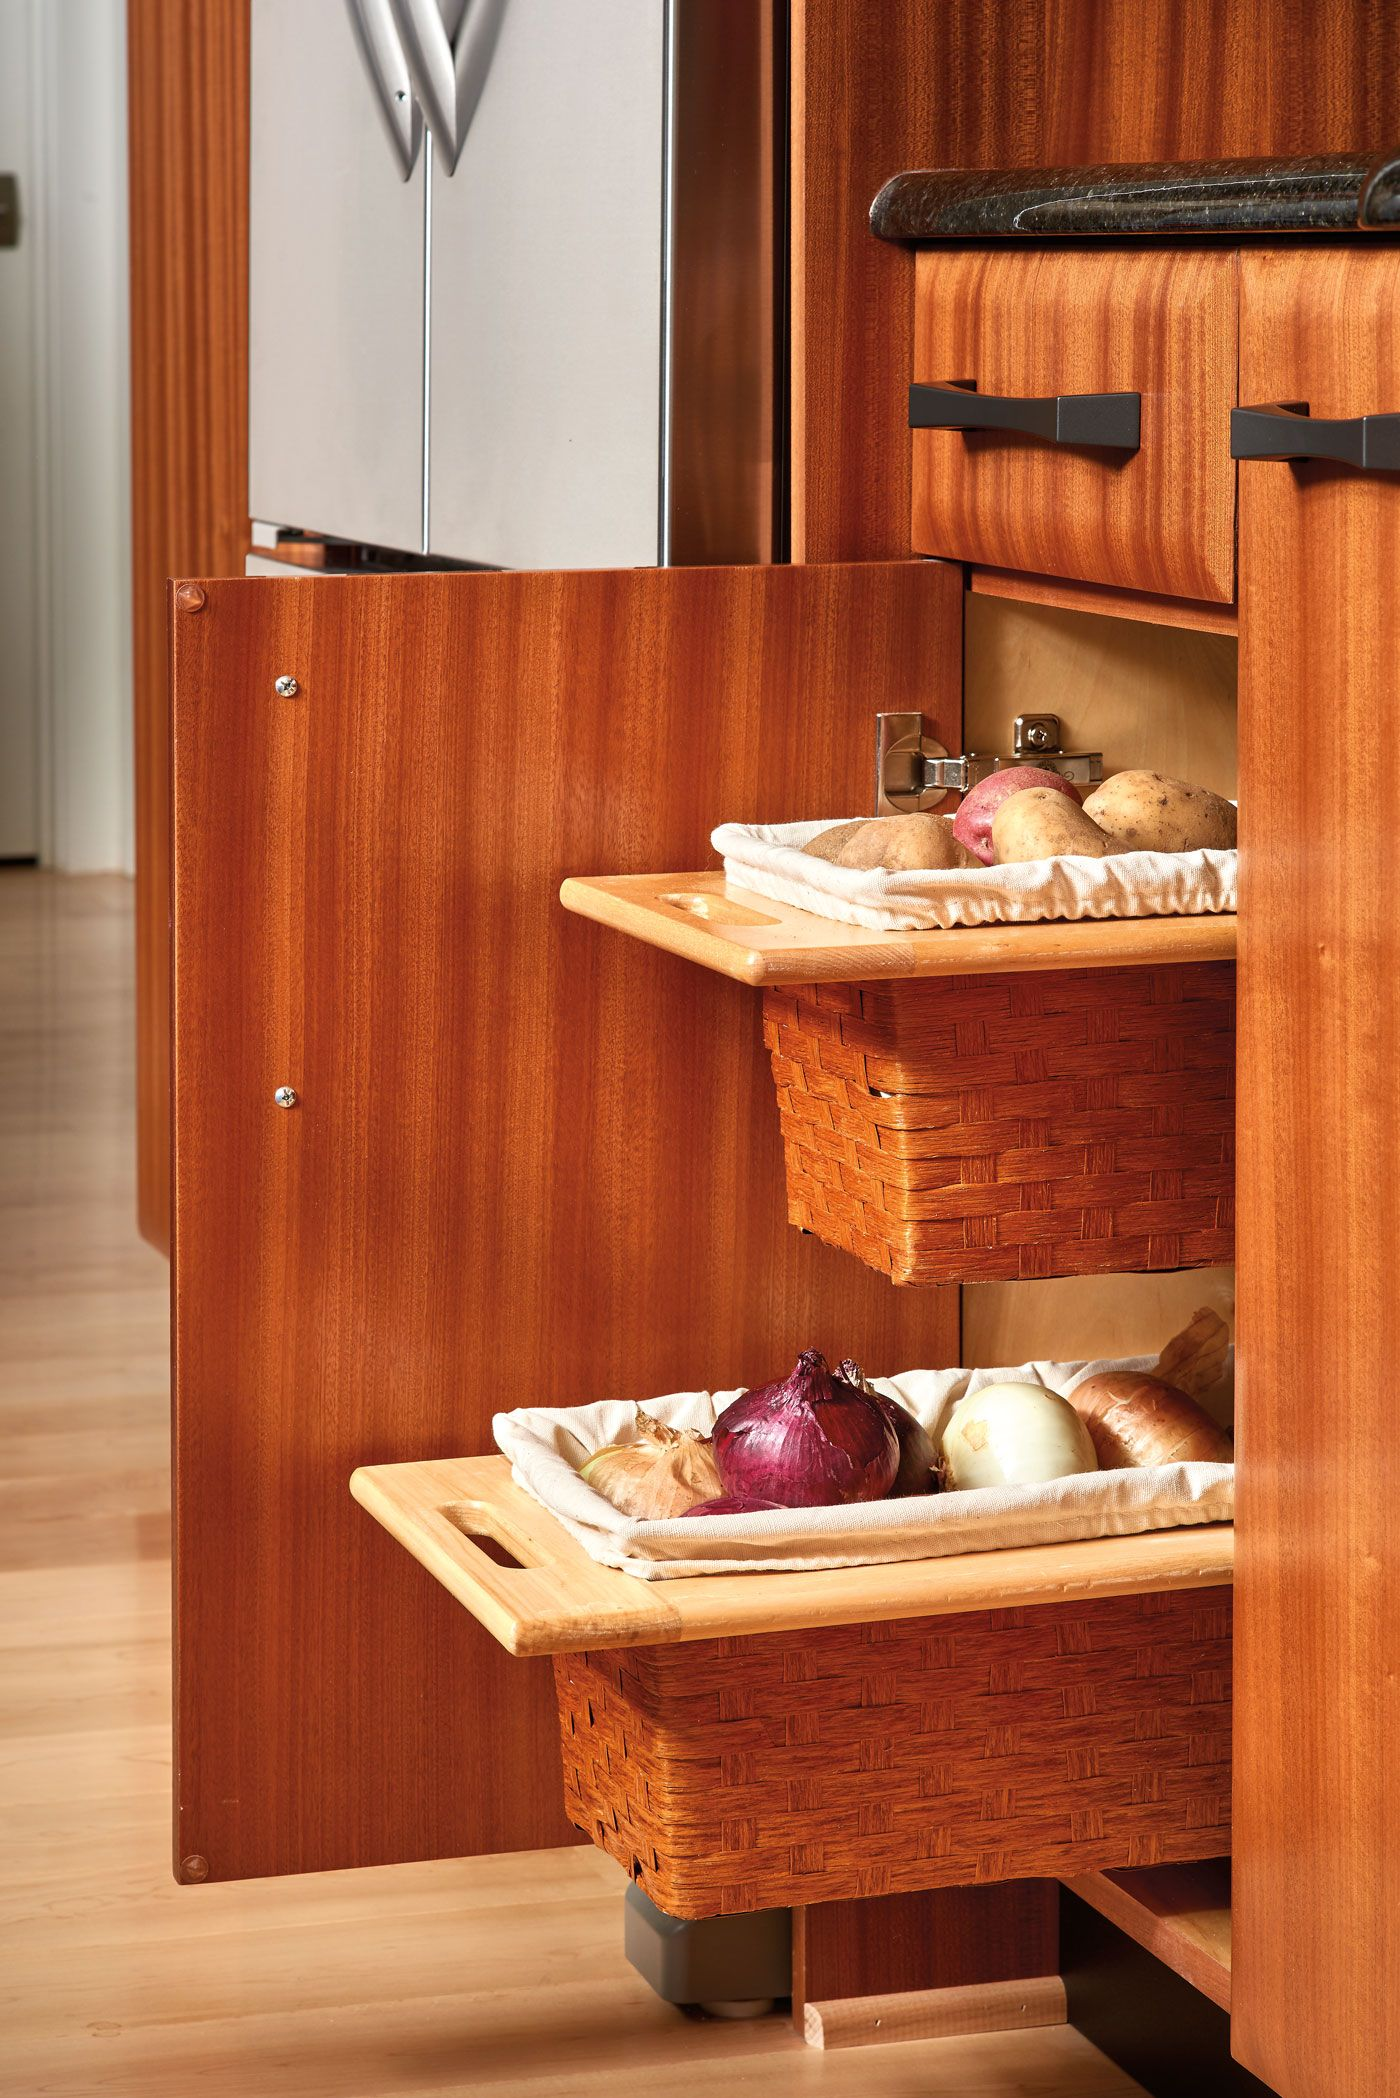 Medium Kitchen Second Place - Name: Tom E. Lutz, AKBD ...